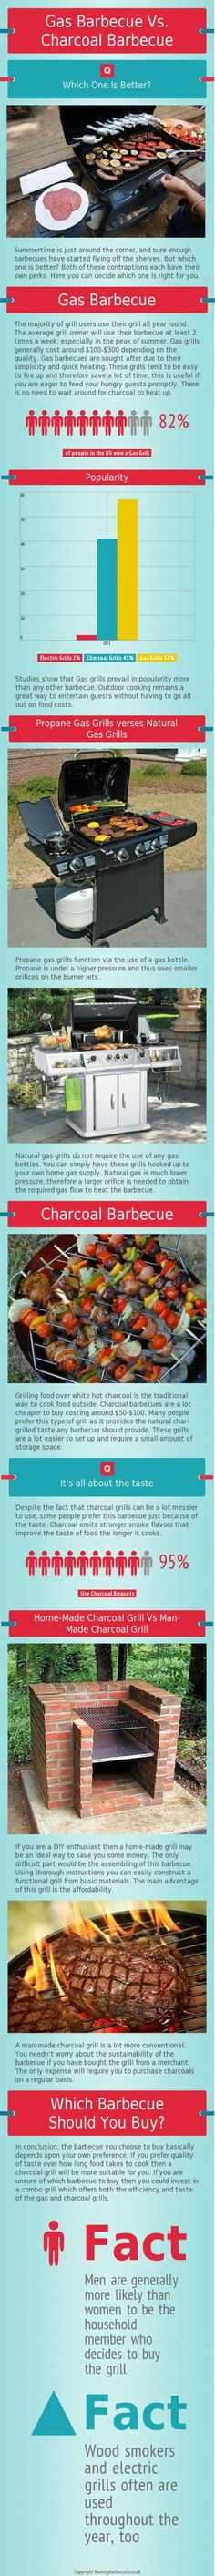 gas grill vs charcoal grill #bbq #barbecue #infographics - Check out more barbecue tips and tricks at TexasBBQNinja.com